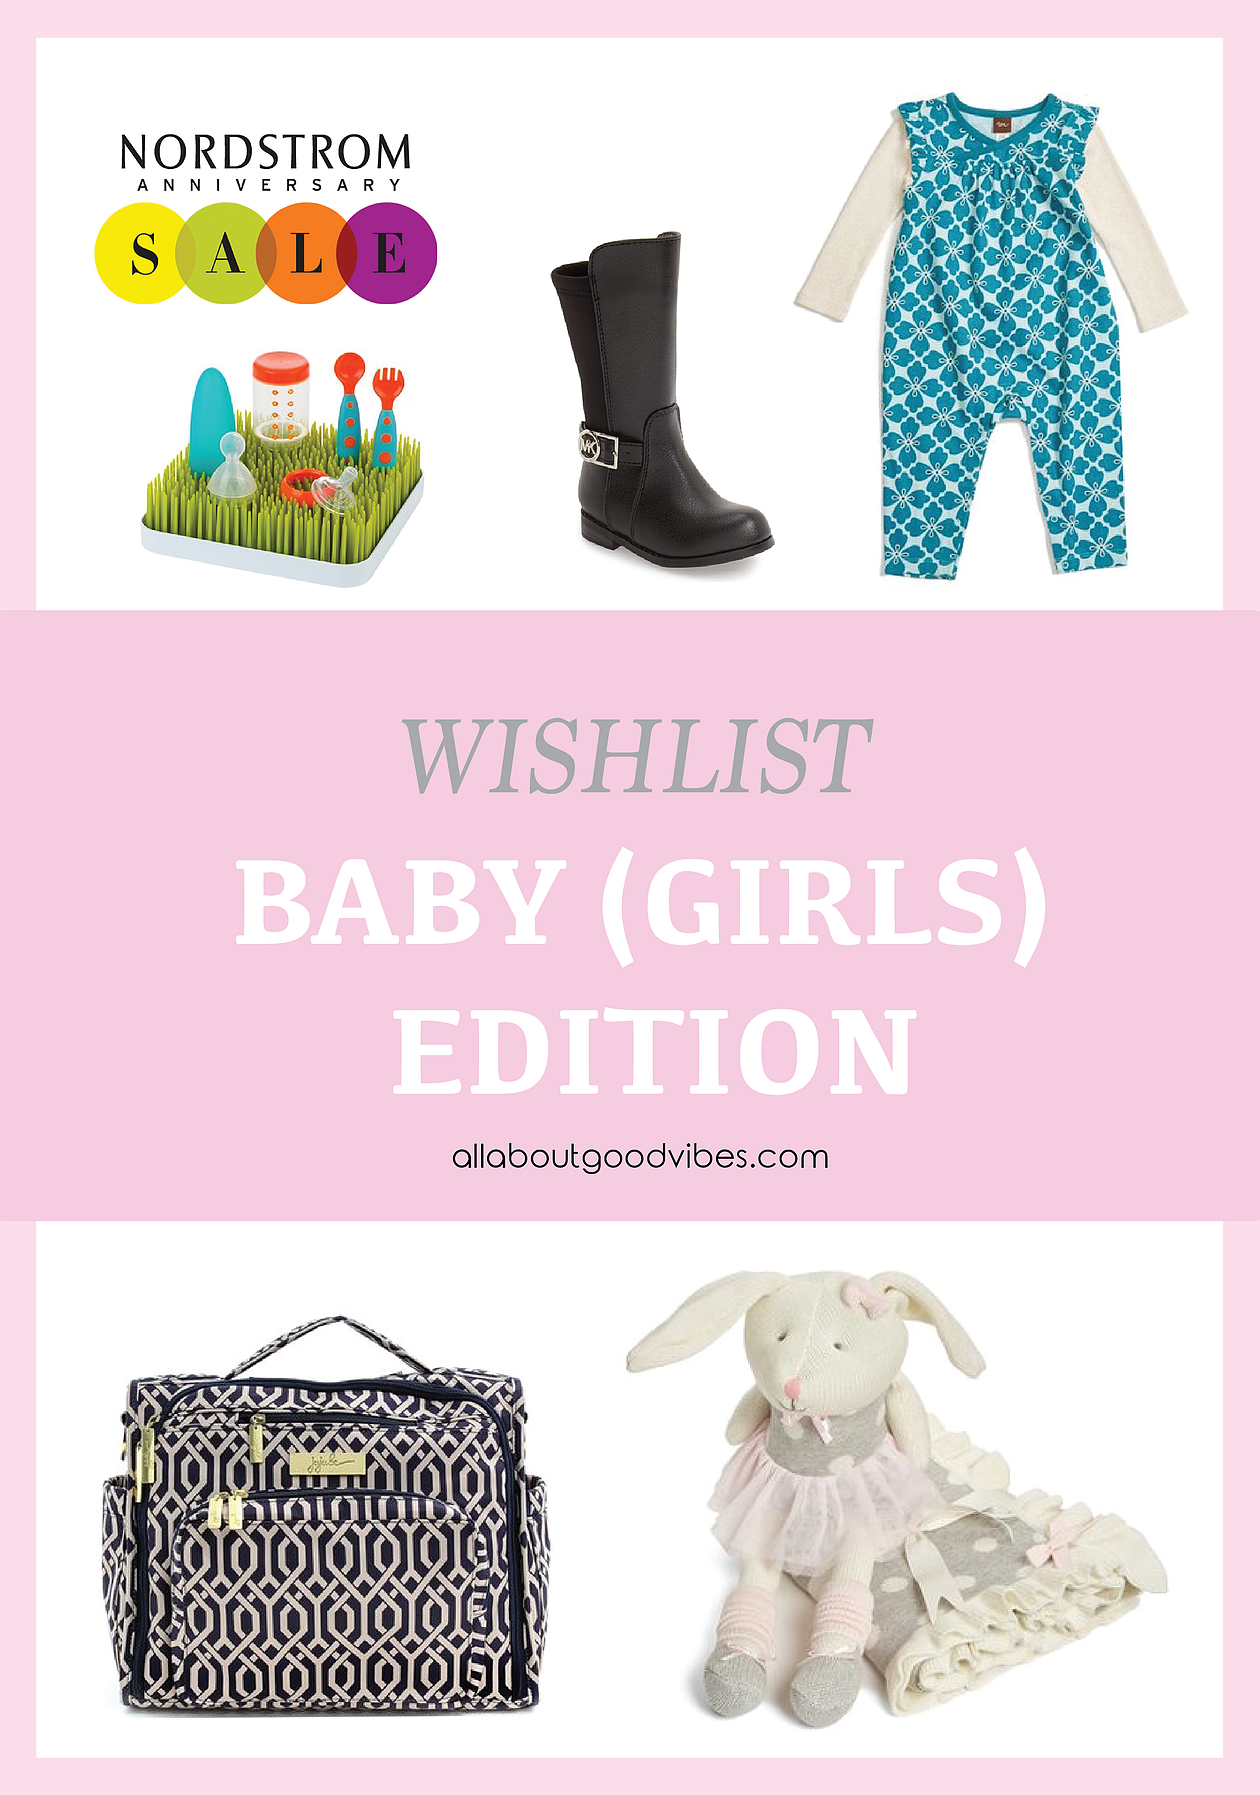 My Shopping List at Nordstrom Anniversary Sale 2016 | Baby (Girls) Edition